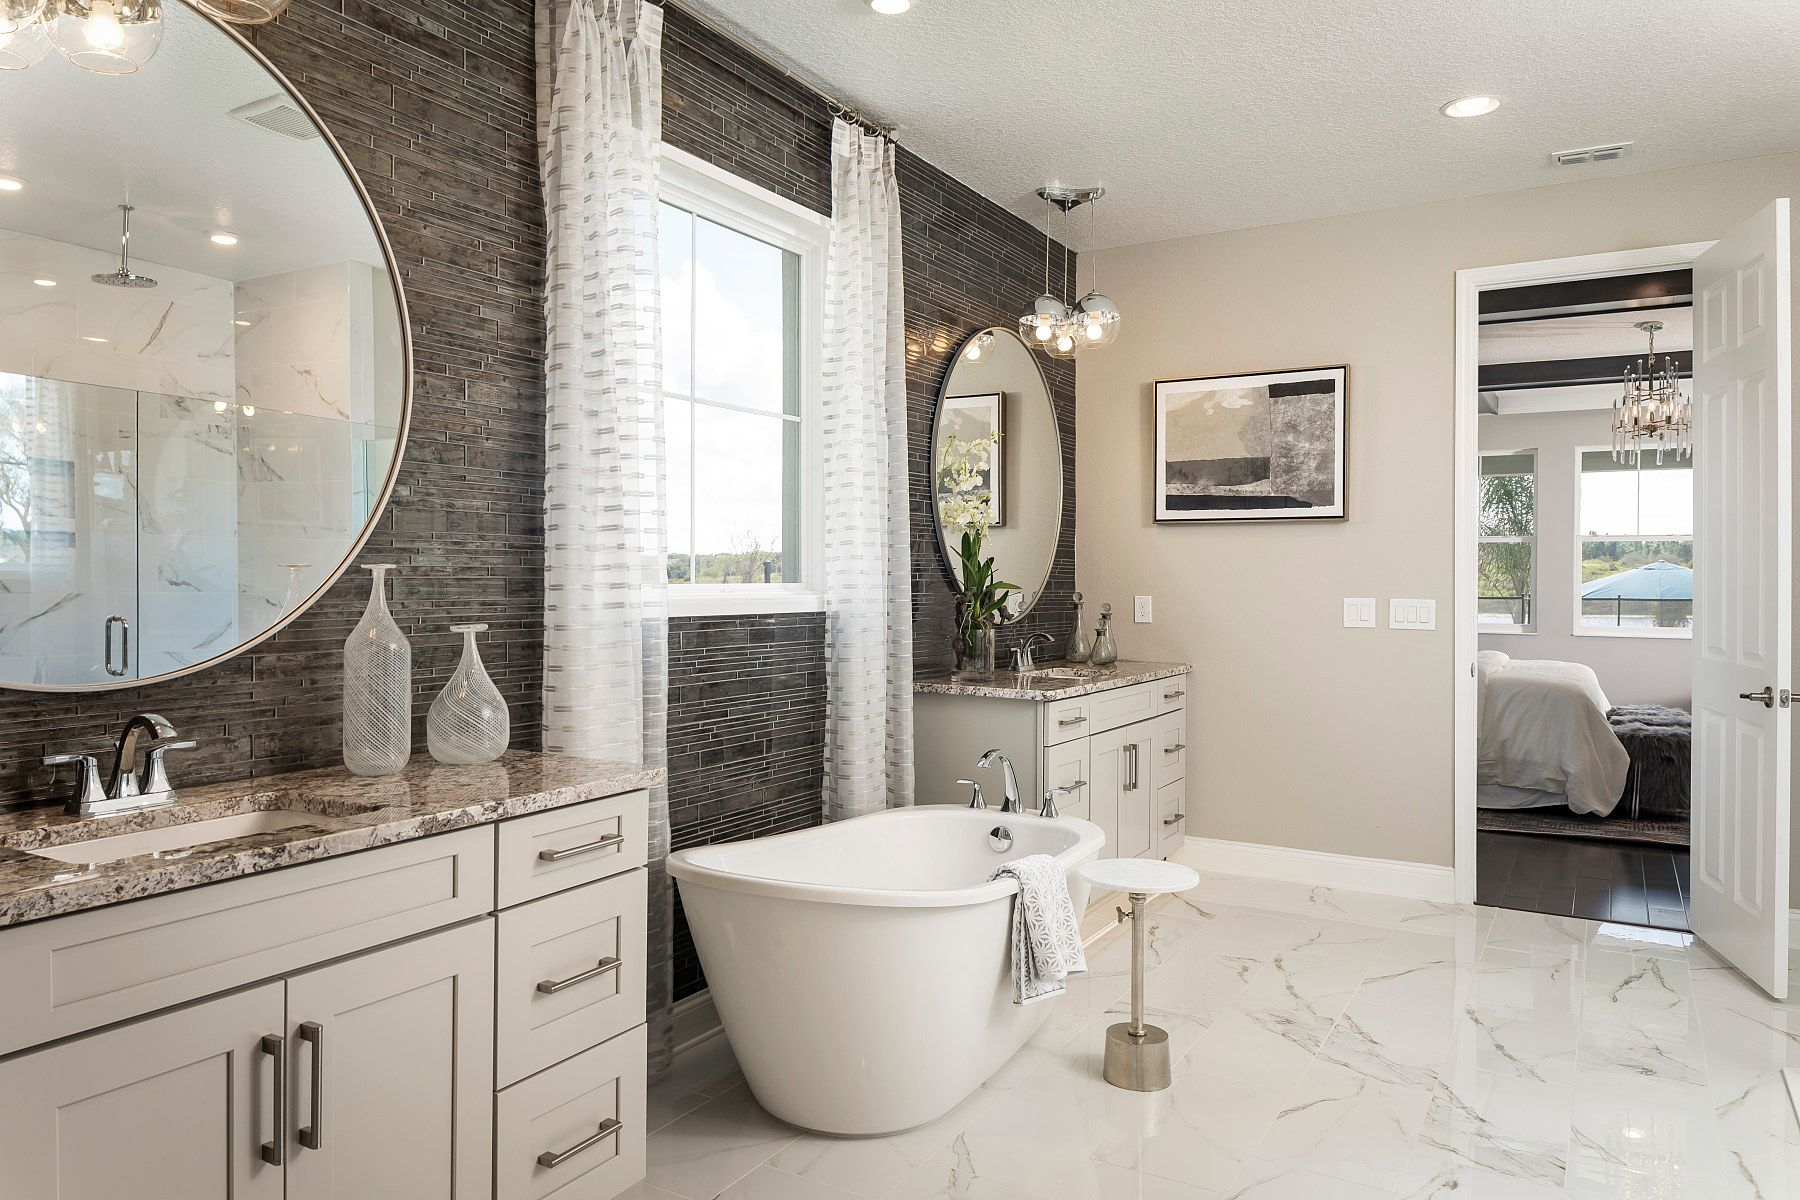 Bathroom featured in the Serenity By M/I Homes in Orlando, FL